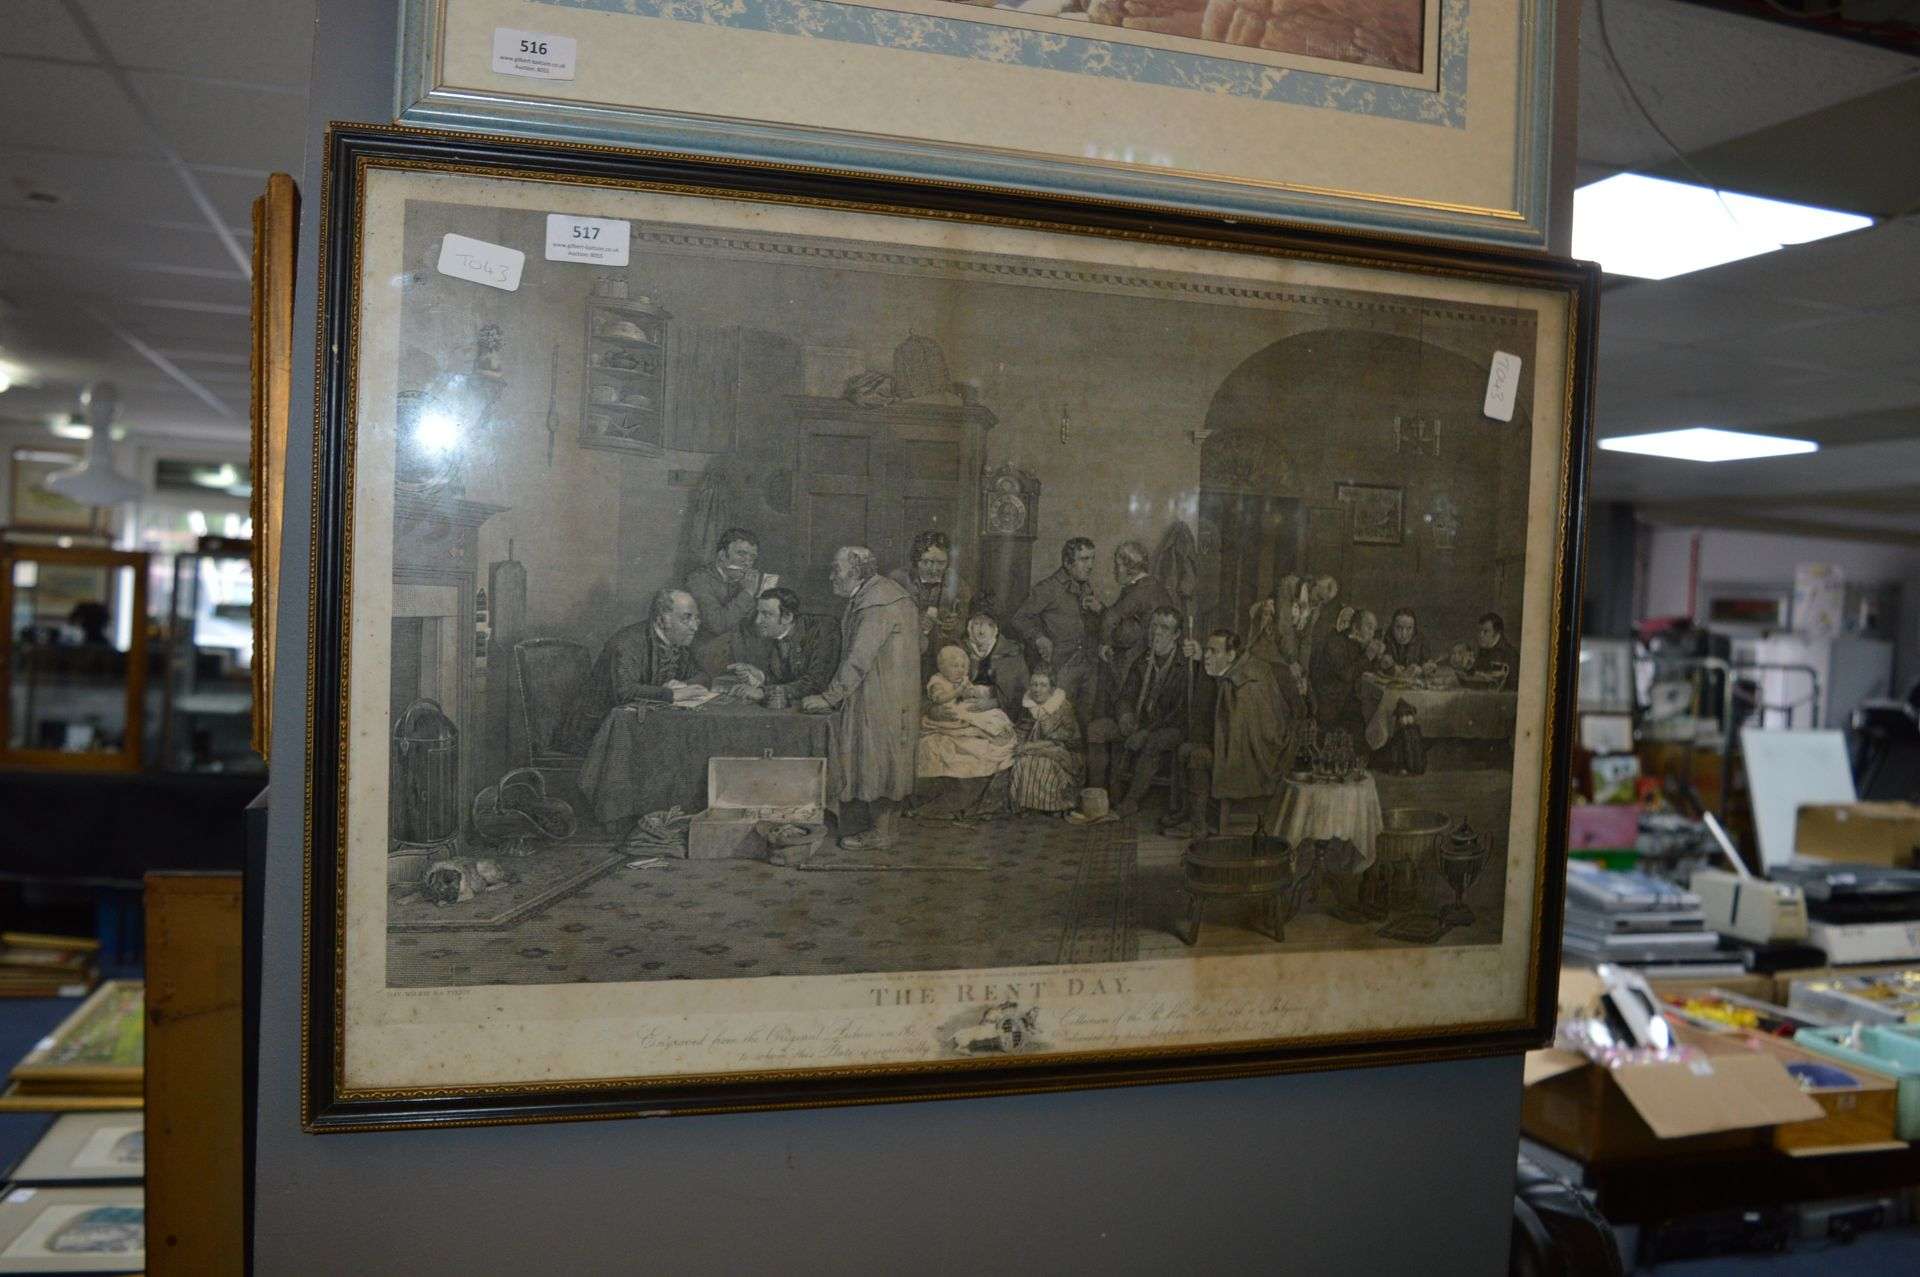 Lot 517 - Vintage Print - The Rent Day 1877